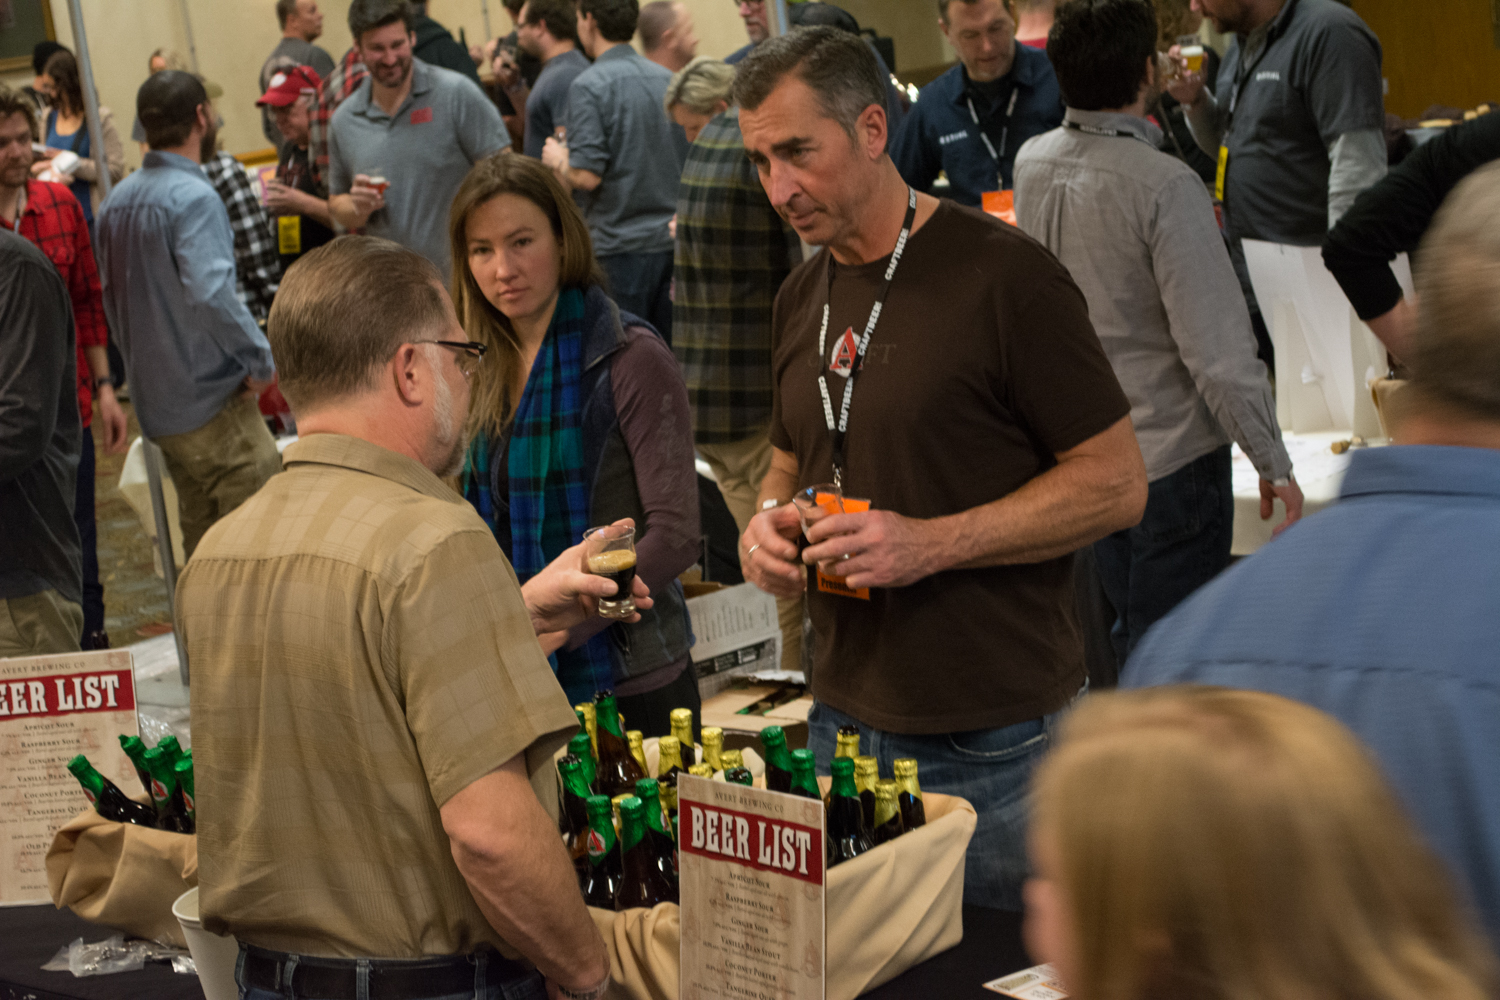 Adam Avery talks beer with attendees at the Avery Brewing booth. Photo: Neill Pieper